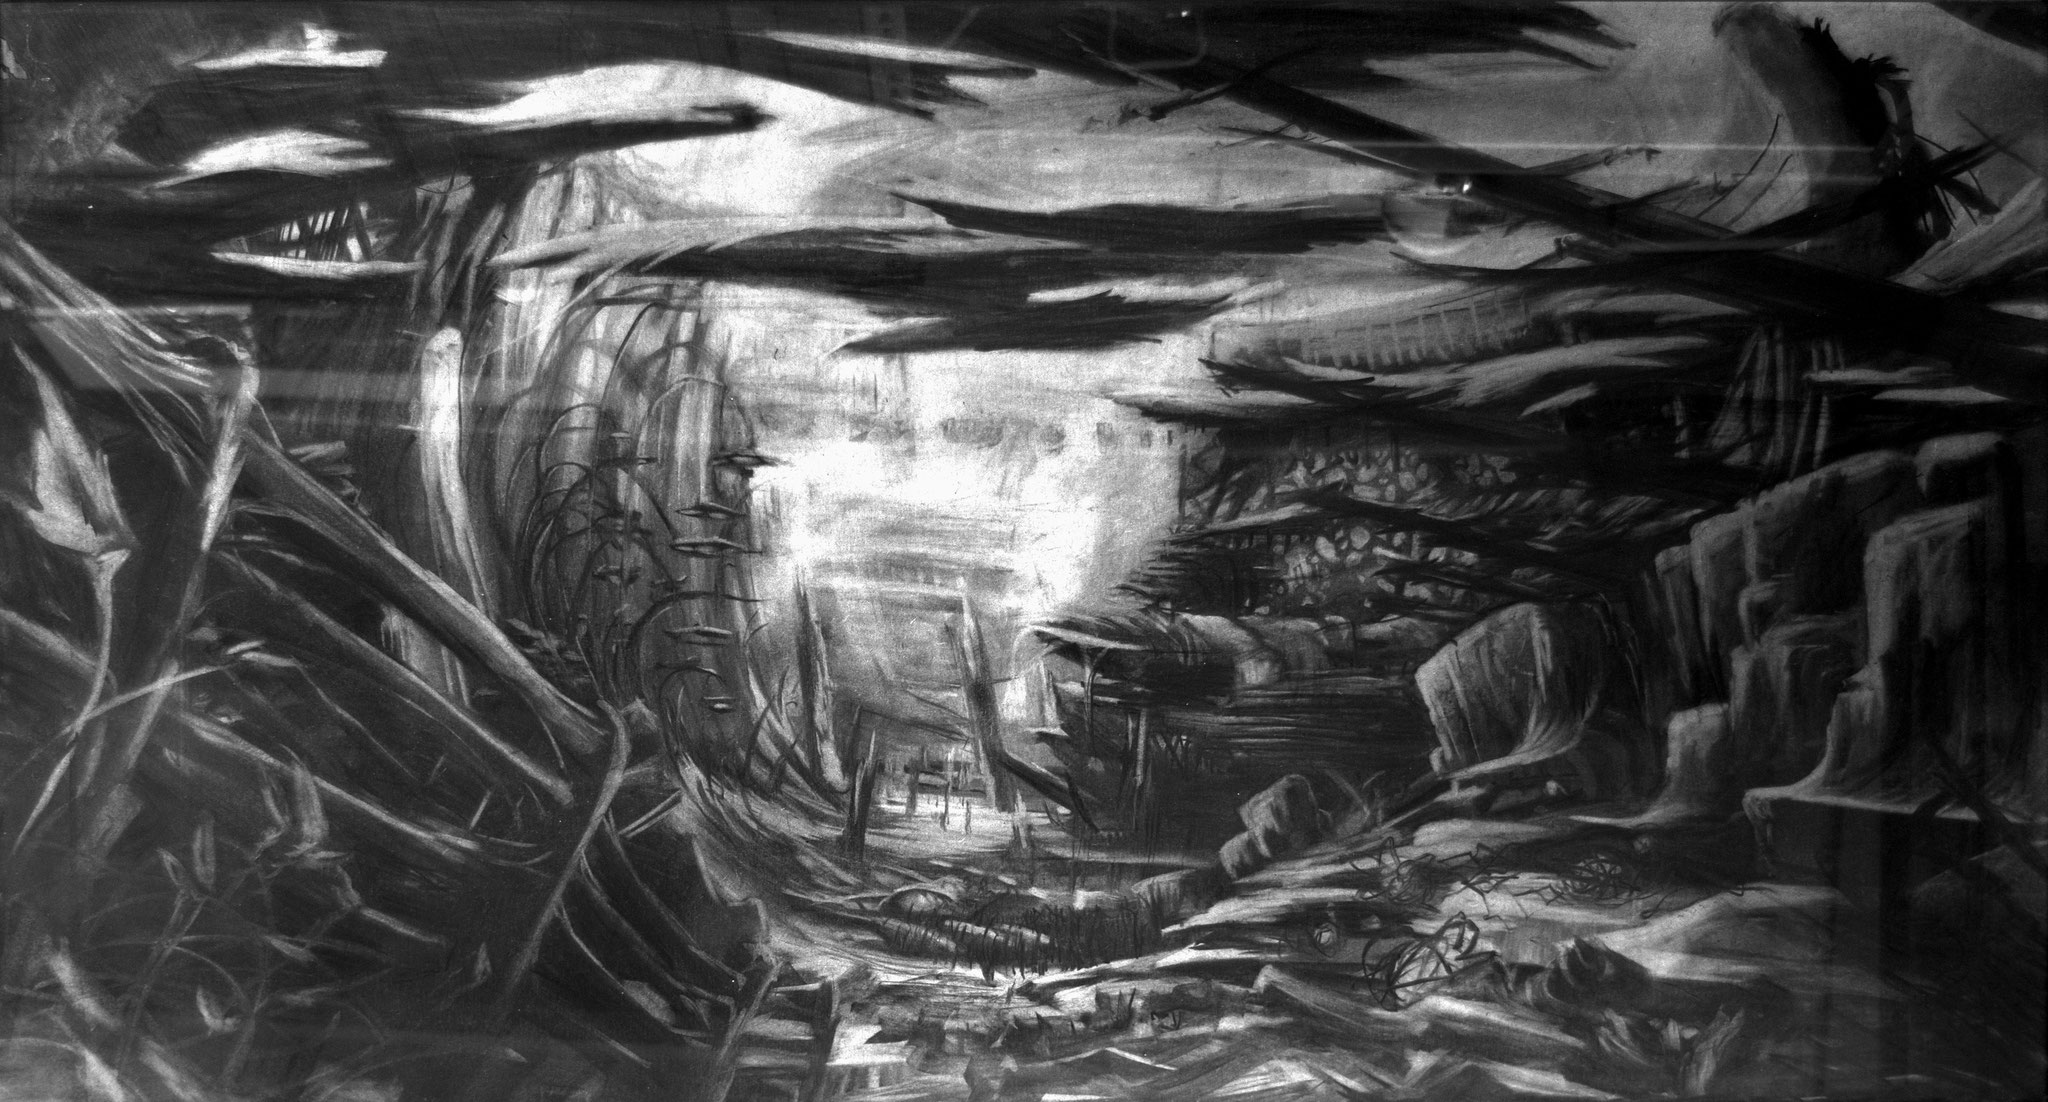 2016 - Safti - Charcoal on paper - 126 x 78 cm - SOLD